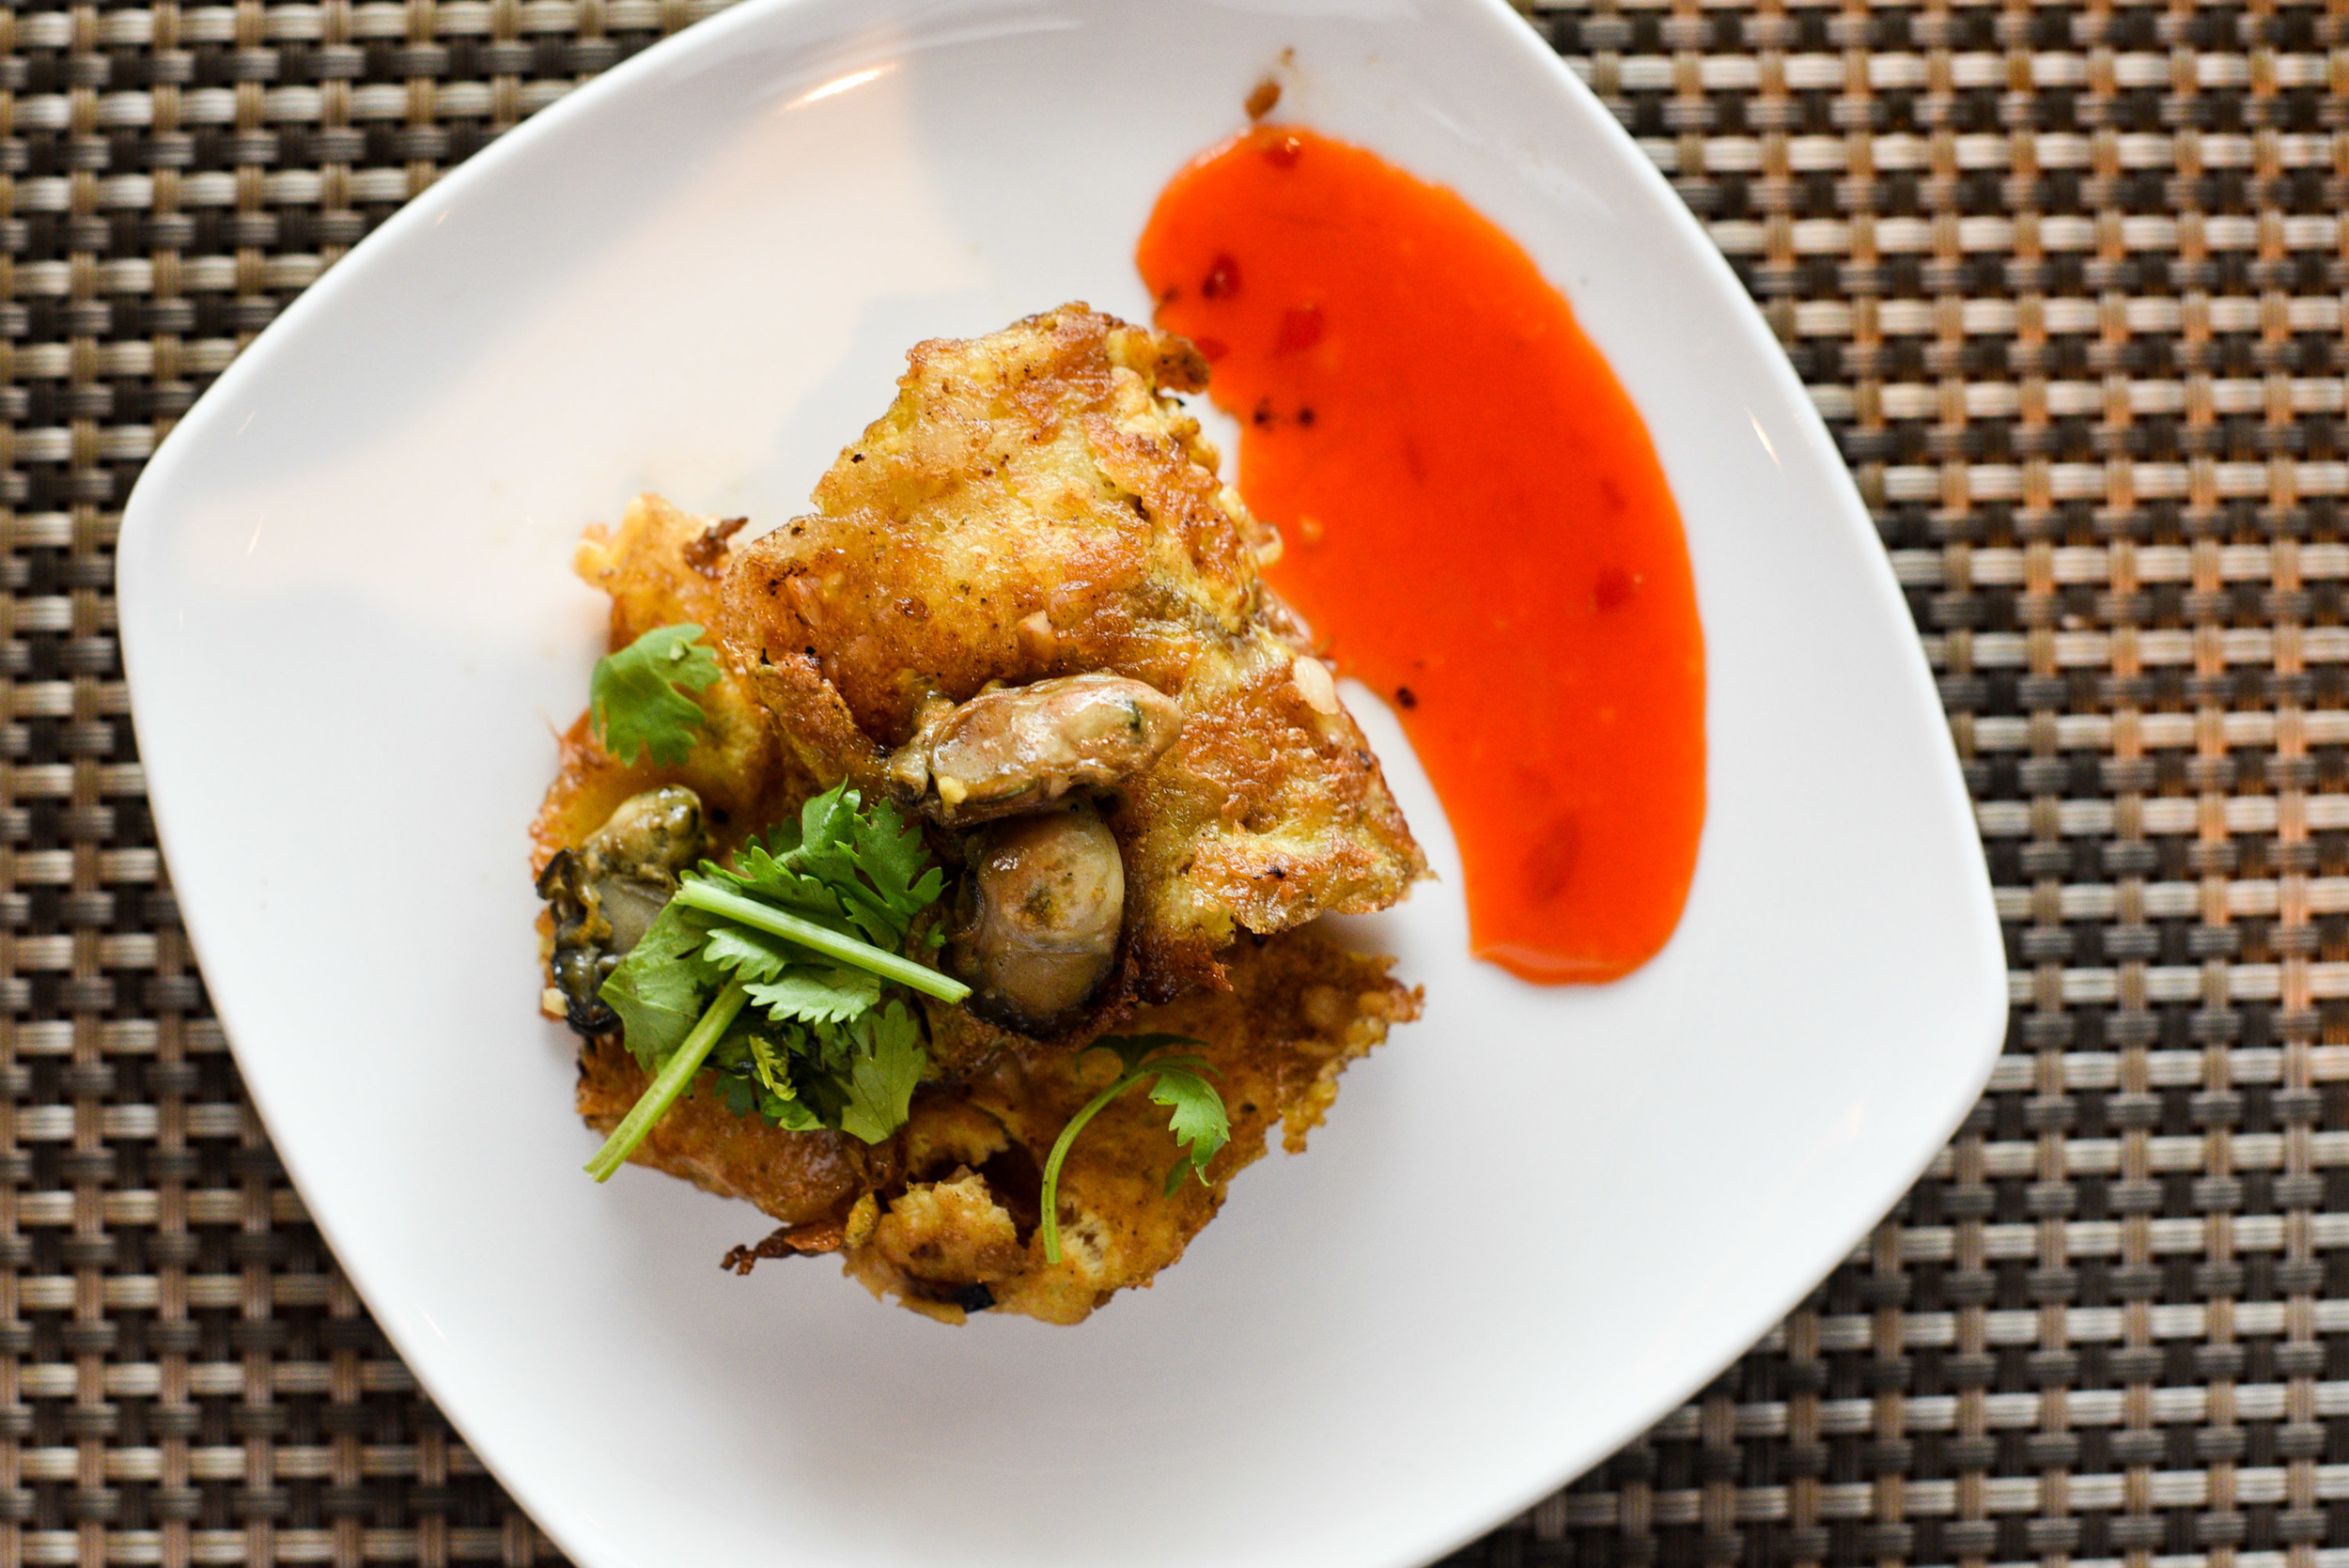 Or Luak - Fried Omelette with Oyster